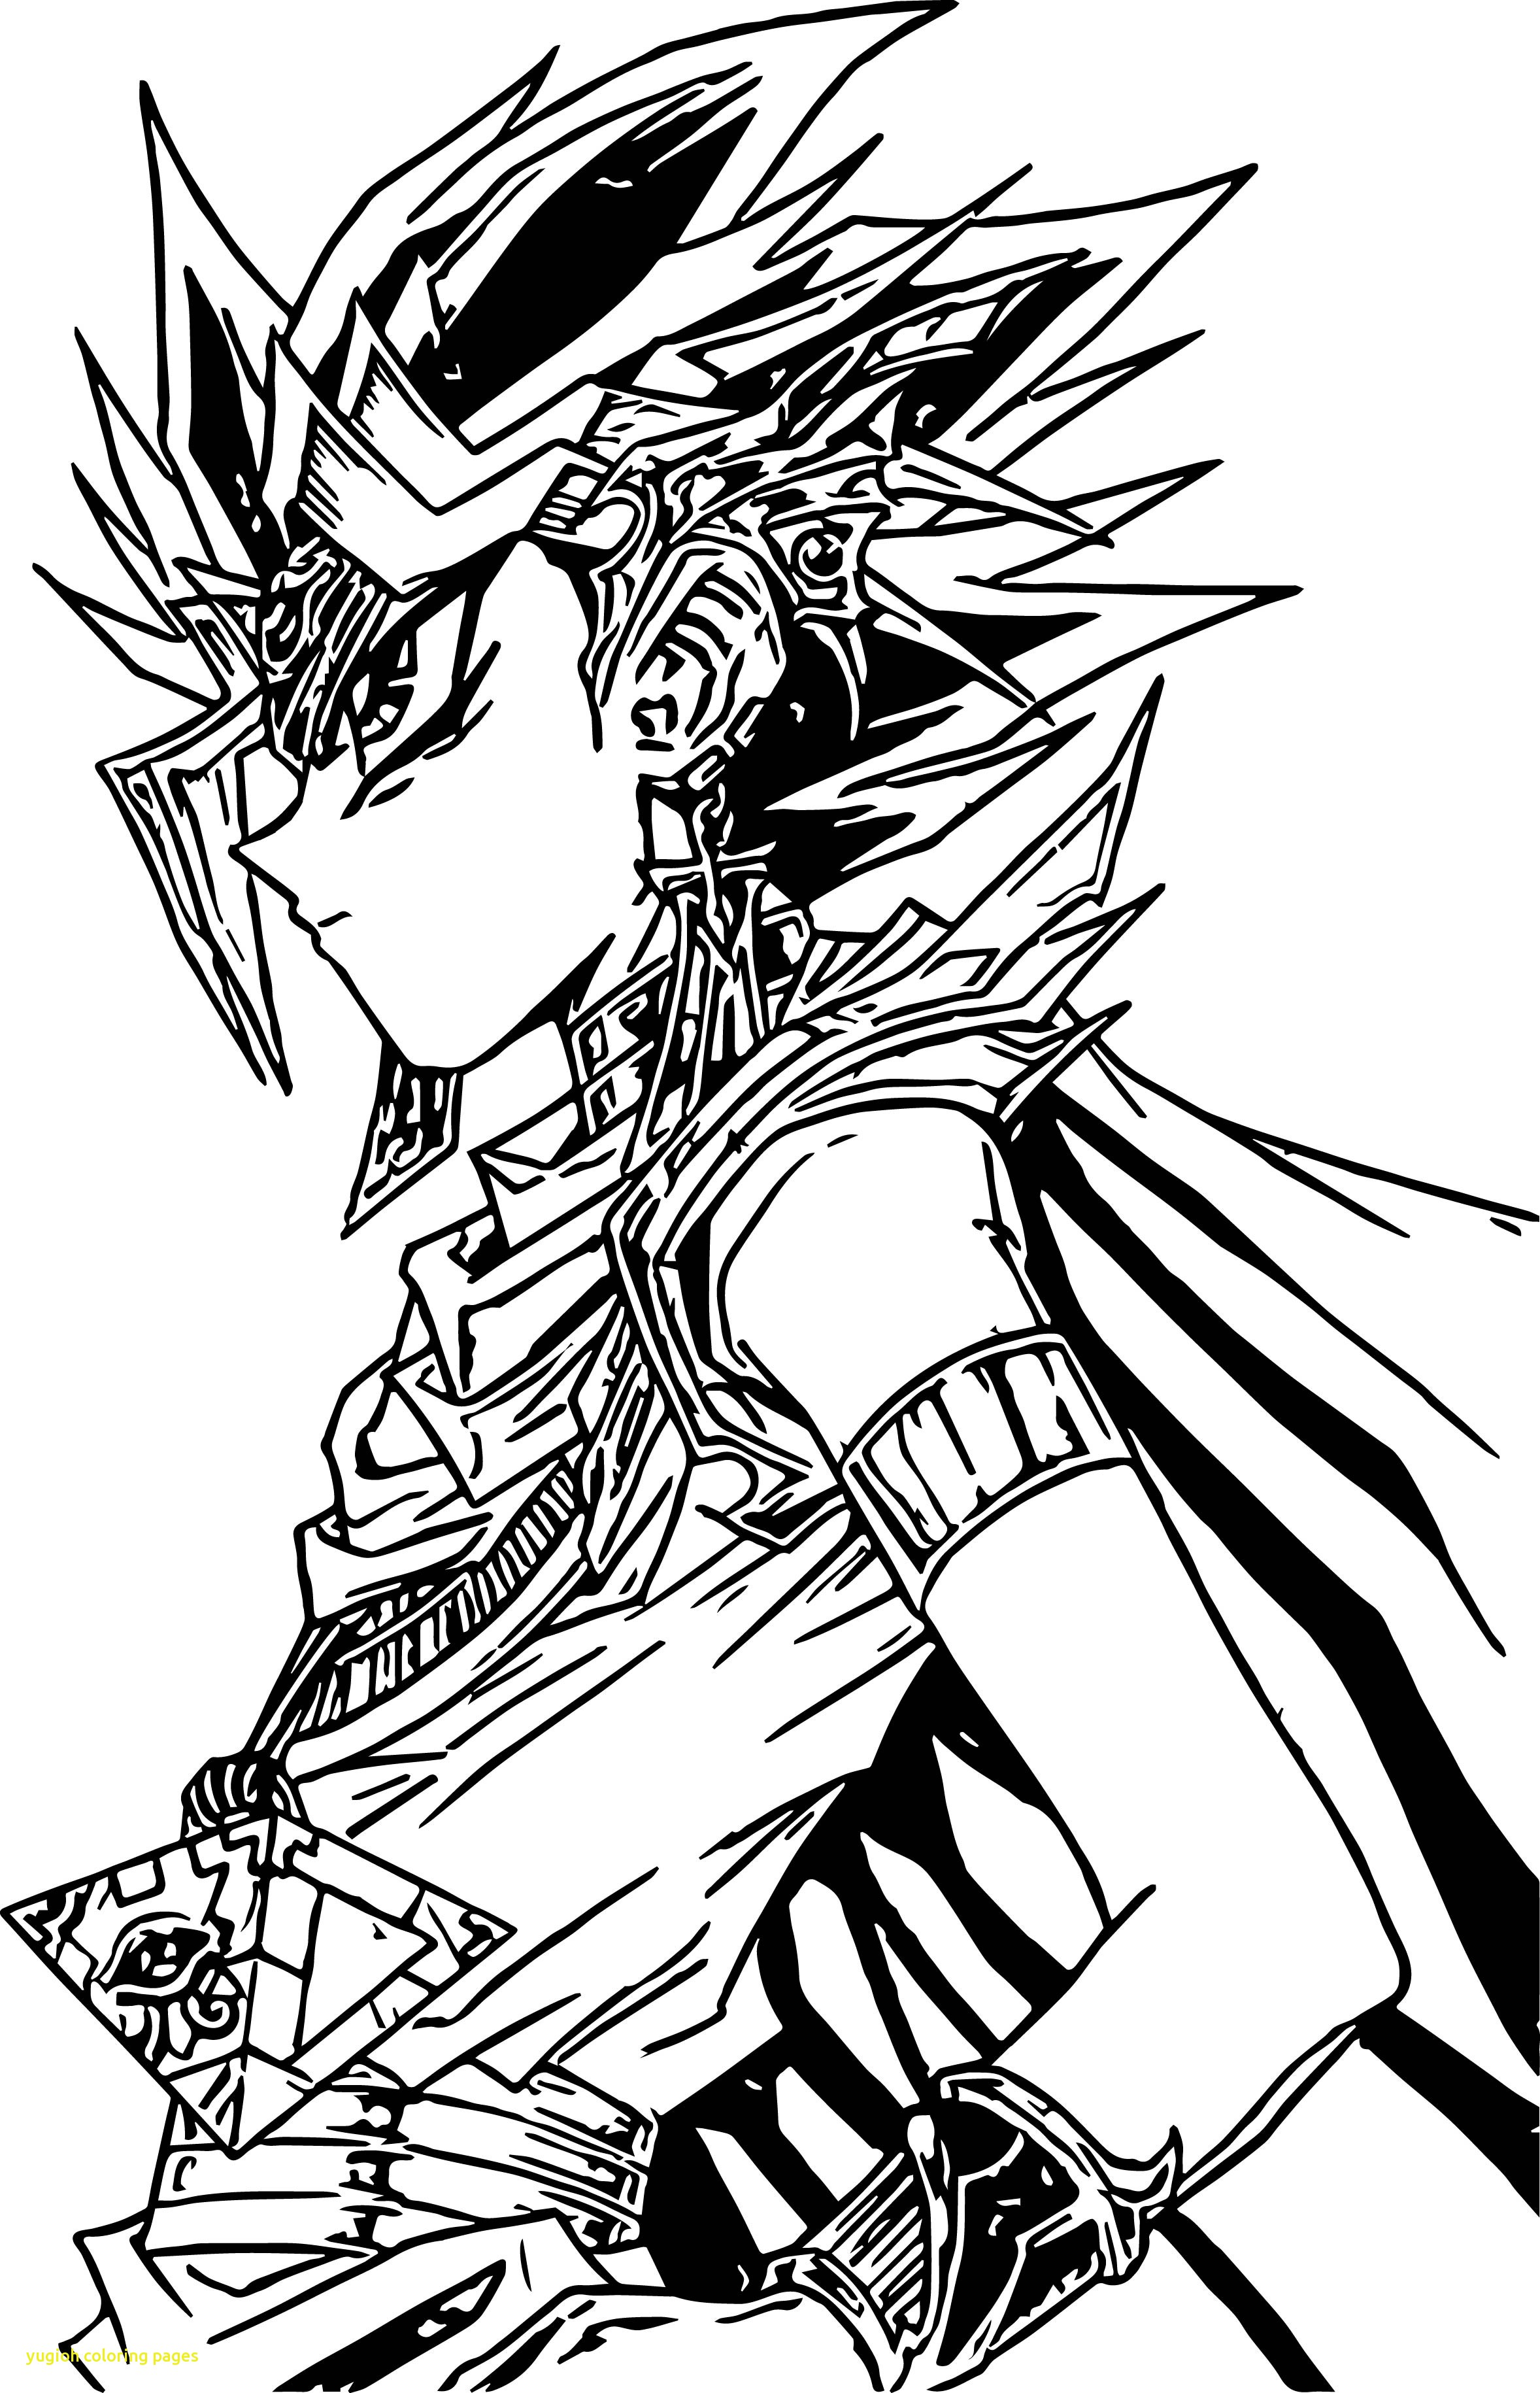 coloring pages yugioh yugioh monsters coloring pages at getcoloringscom free coloring pages yugioh